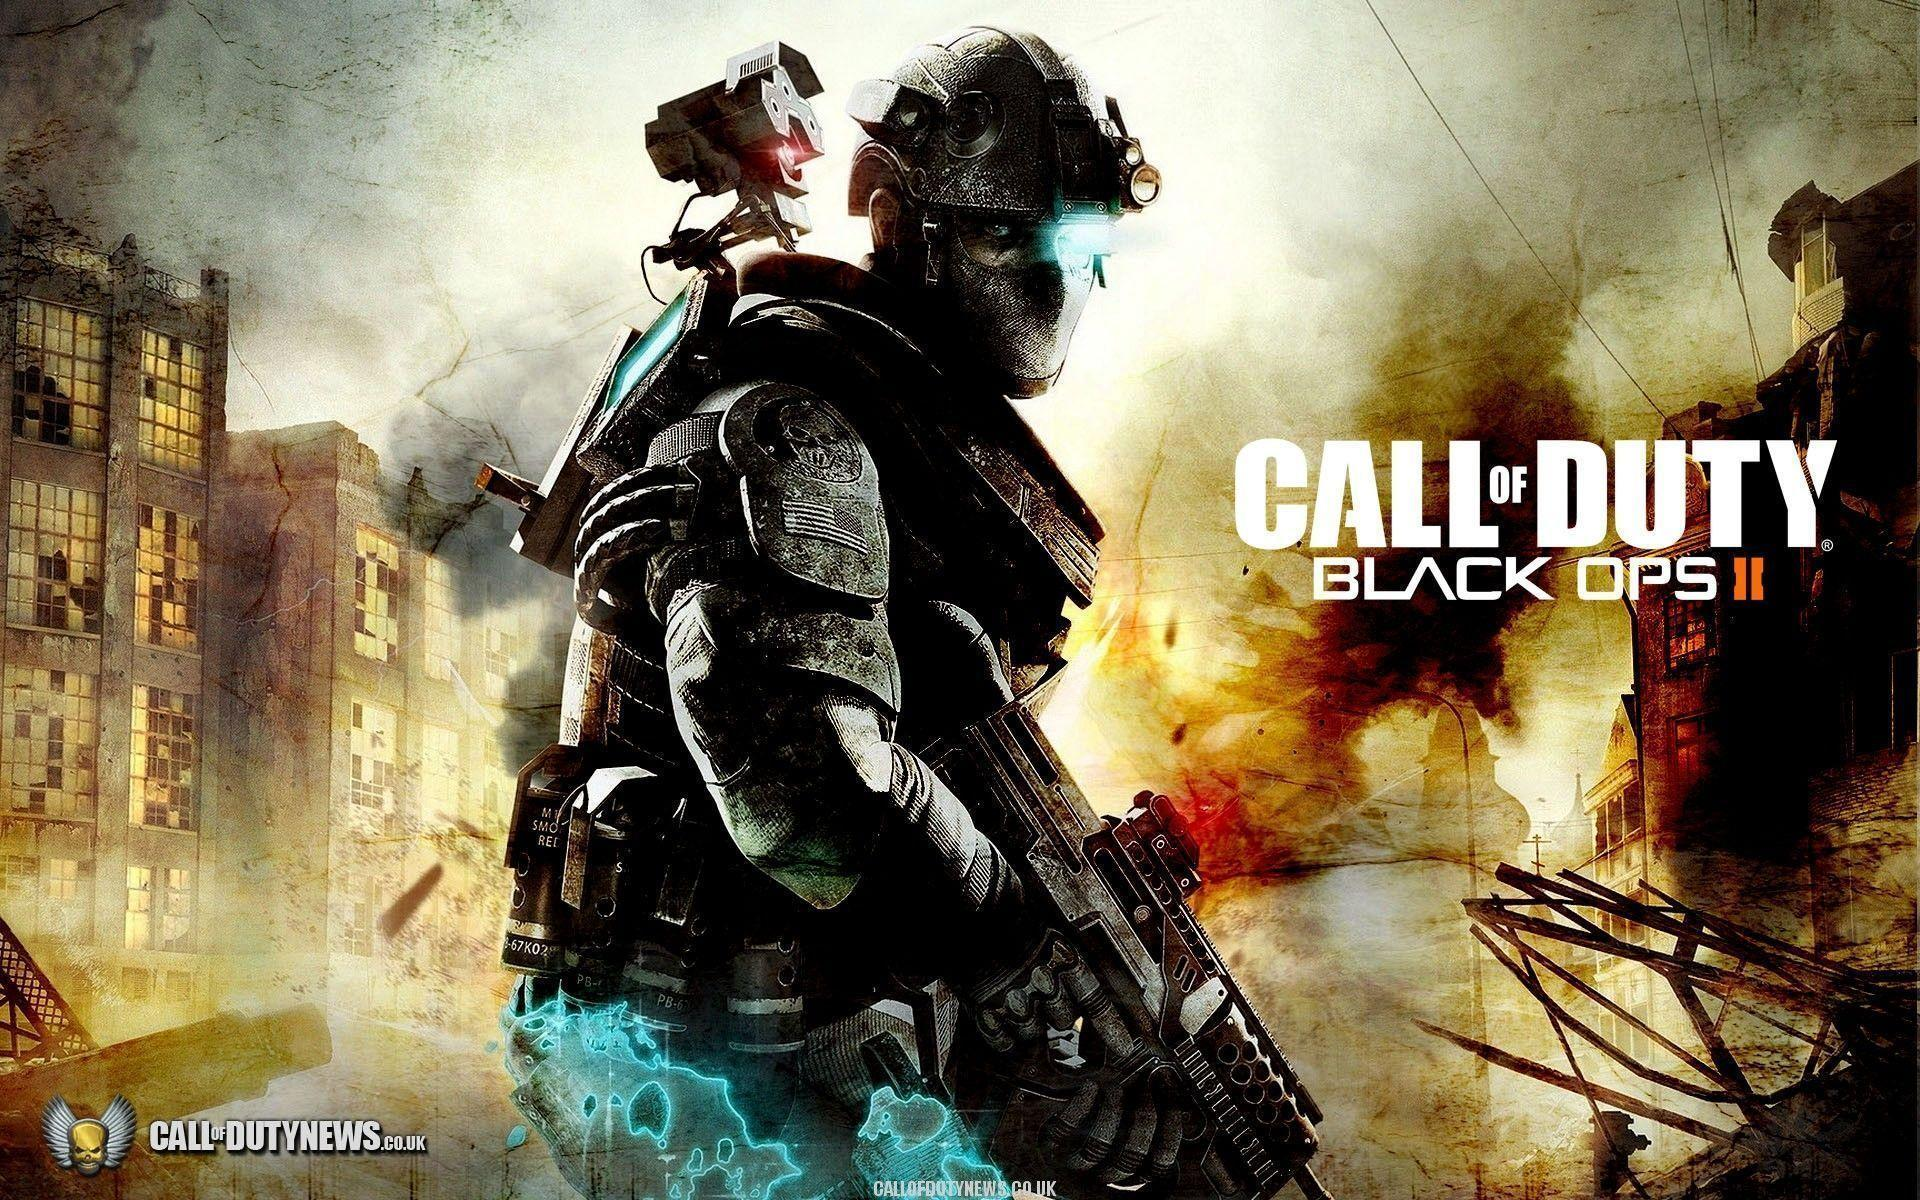 Call of duty black ops 2 wallpapers hd 1080p